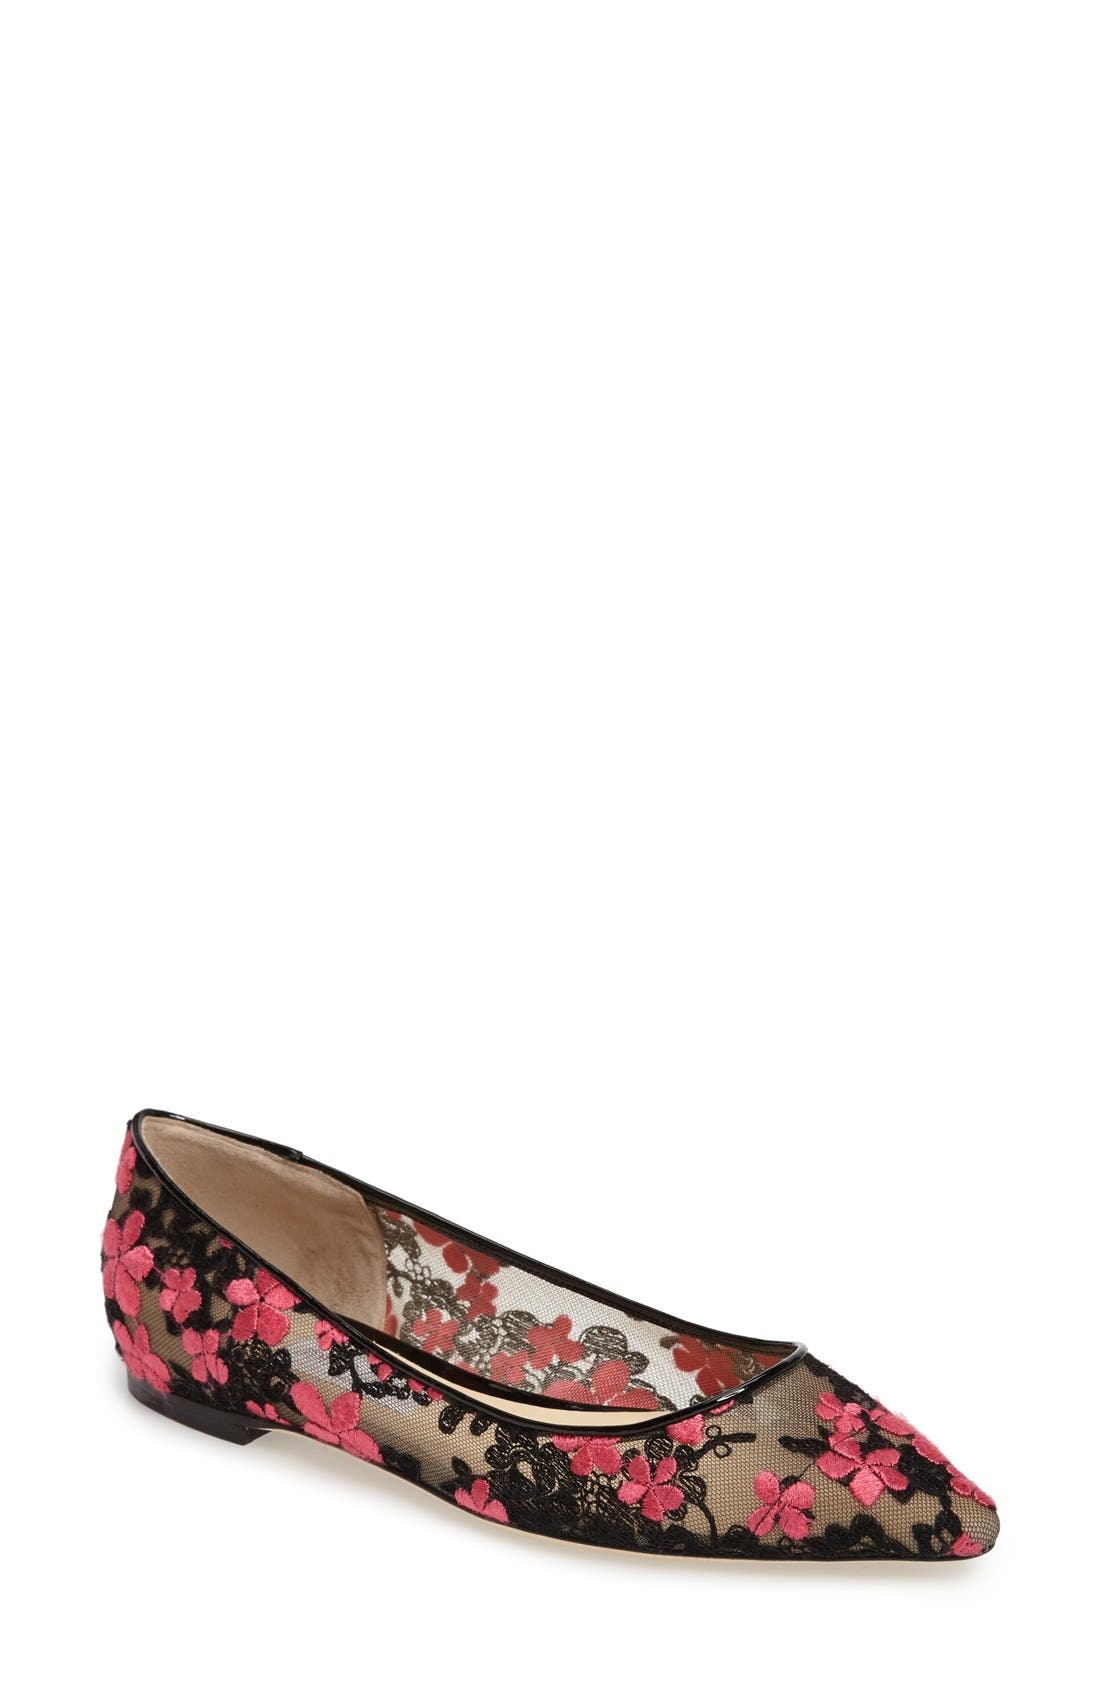 Alternate Image 1 Selected - Jimmy Choo Romy Embroidered Floral Flat (Women)